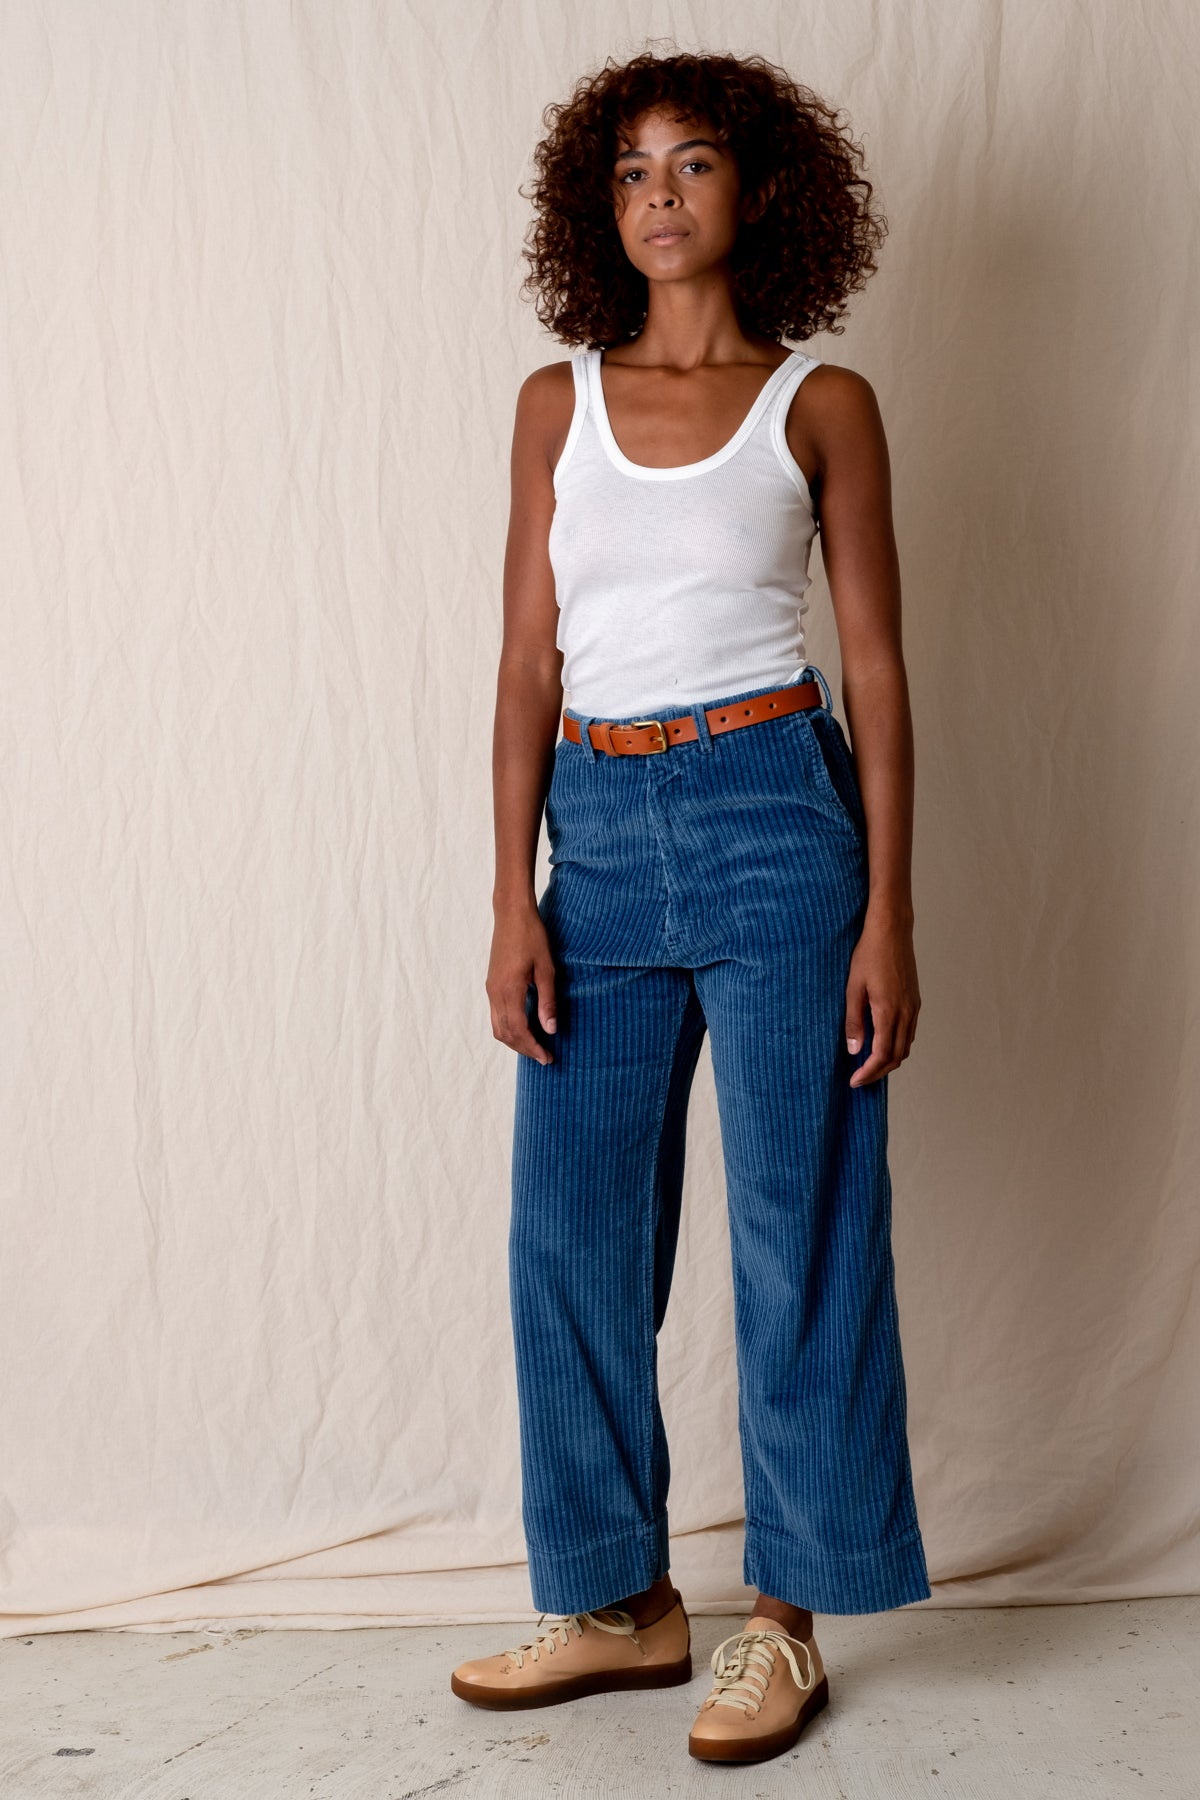 GREENE PANTS IN INDIGO CORDUROY